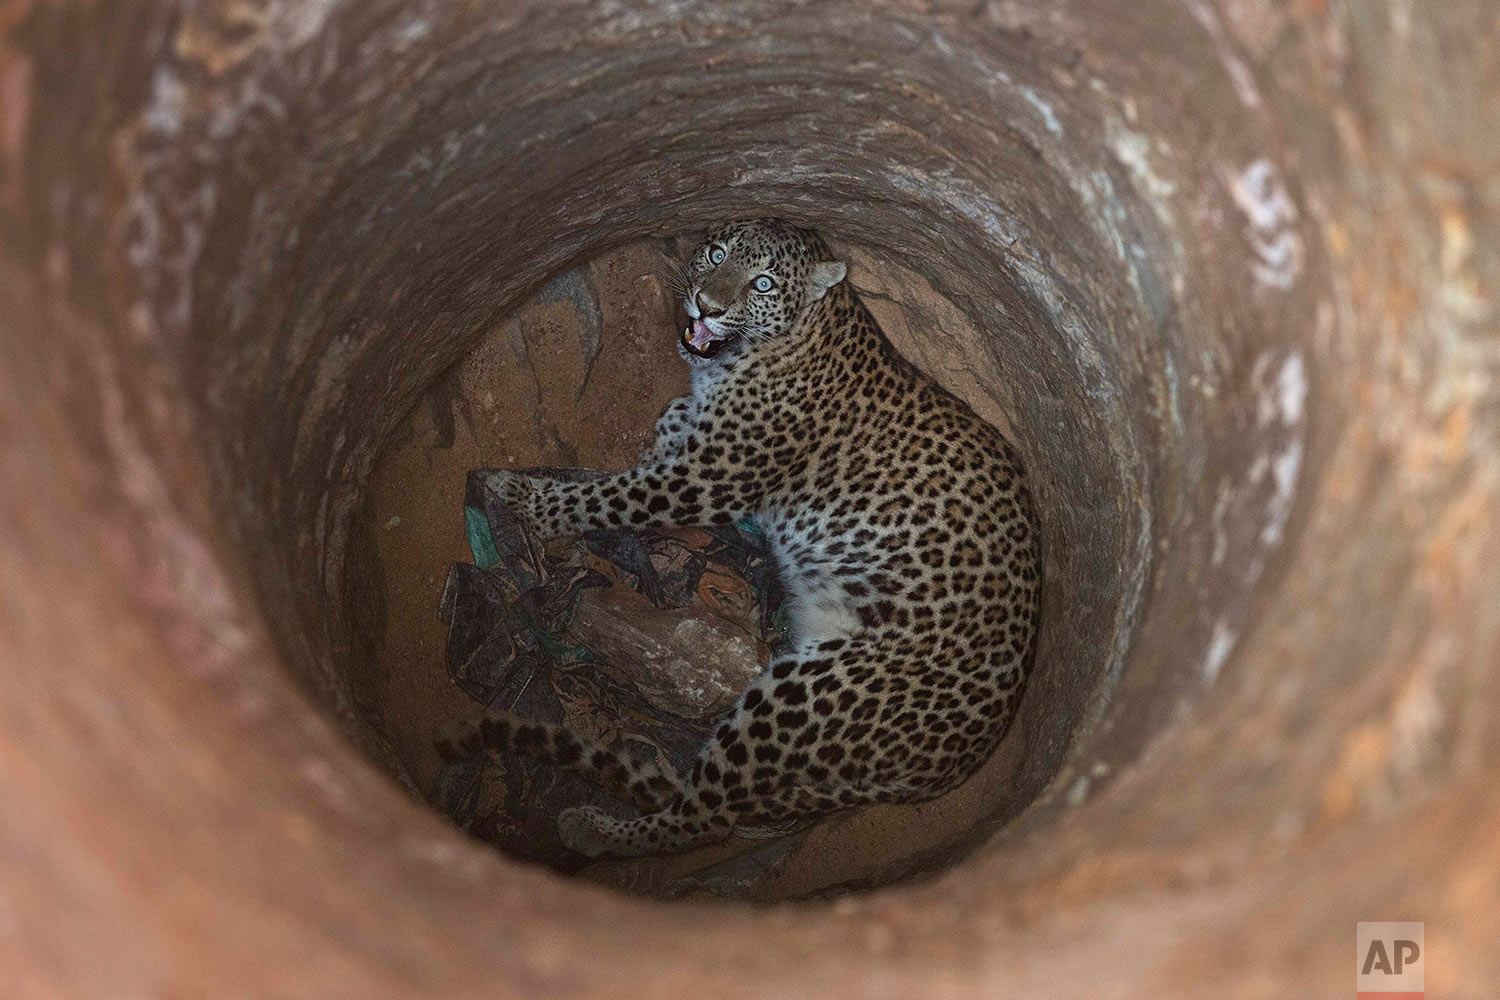 A full grown female leopard looks up from inside a deep well that it fell into near a residential area on a hill on the outskirts of Gauhati, India, Wednesday, Dec.13, 2017. Veterinarian and forest officials tranquilized and rescued the leopard before sending it to the state zoological park in Gauhati. (AP Photo/Anupam Nath)